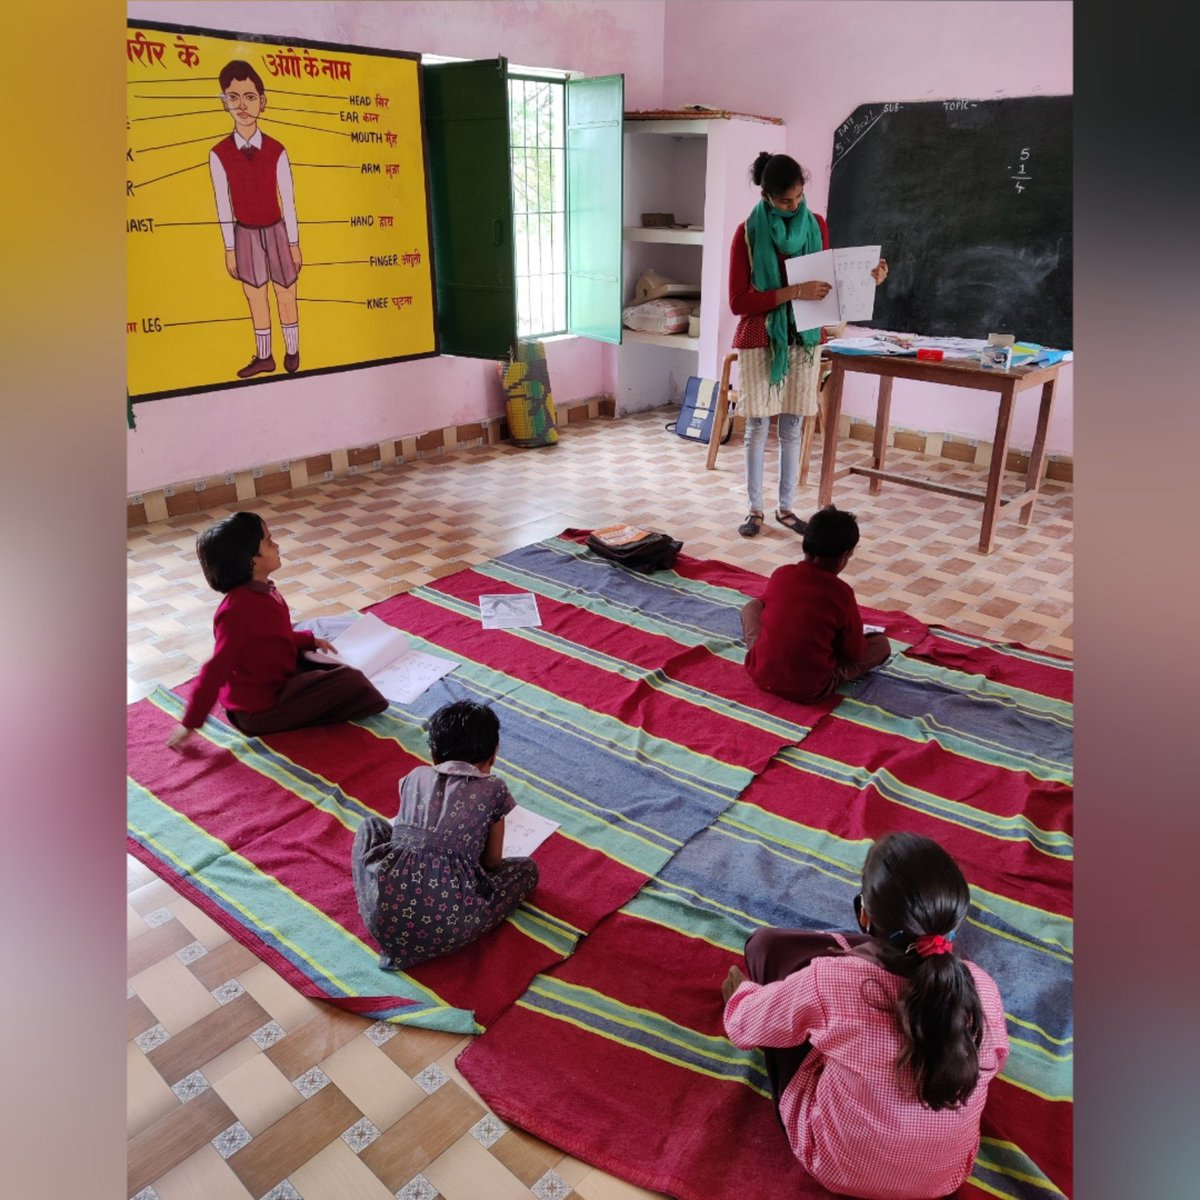 This new year we continue to work with children on their #foundationallearning with learning workbooks as the school continues to be shut.  Support our work by contributing-   #educationforall #ruralindia #foundationaliteracy #thechildrenoftheworld #Upkram